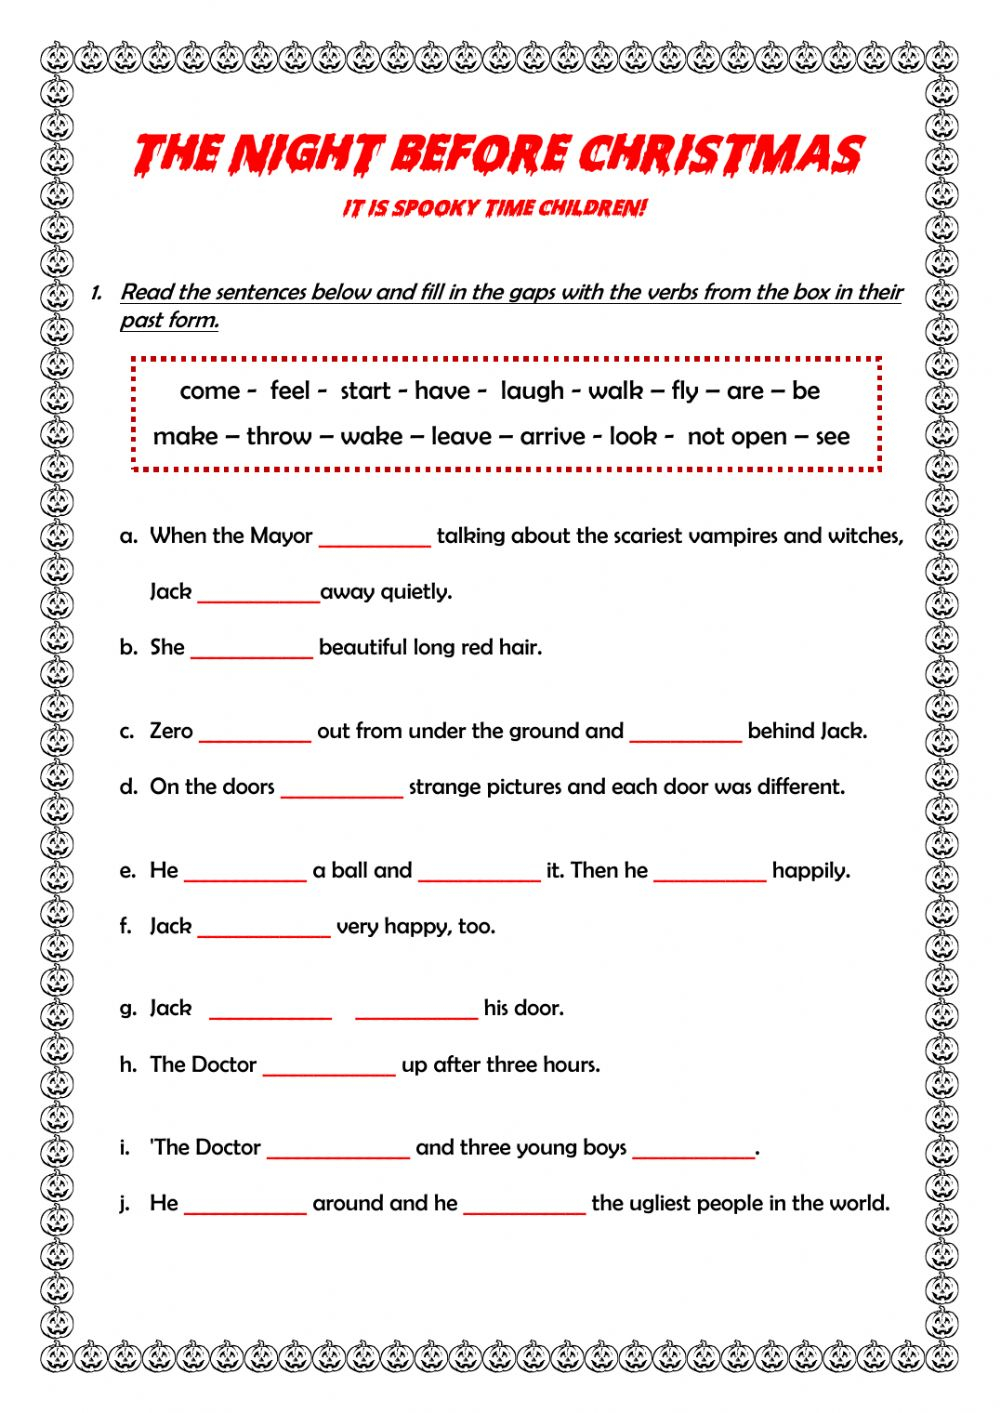 The Night Before Christmas Worksheet